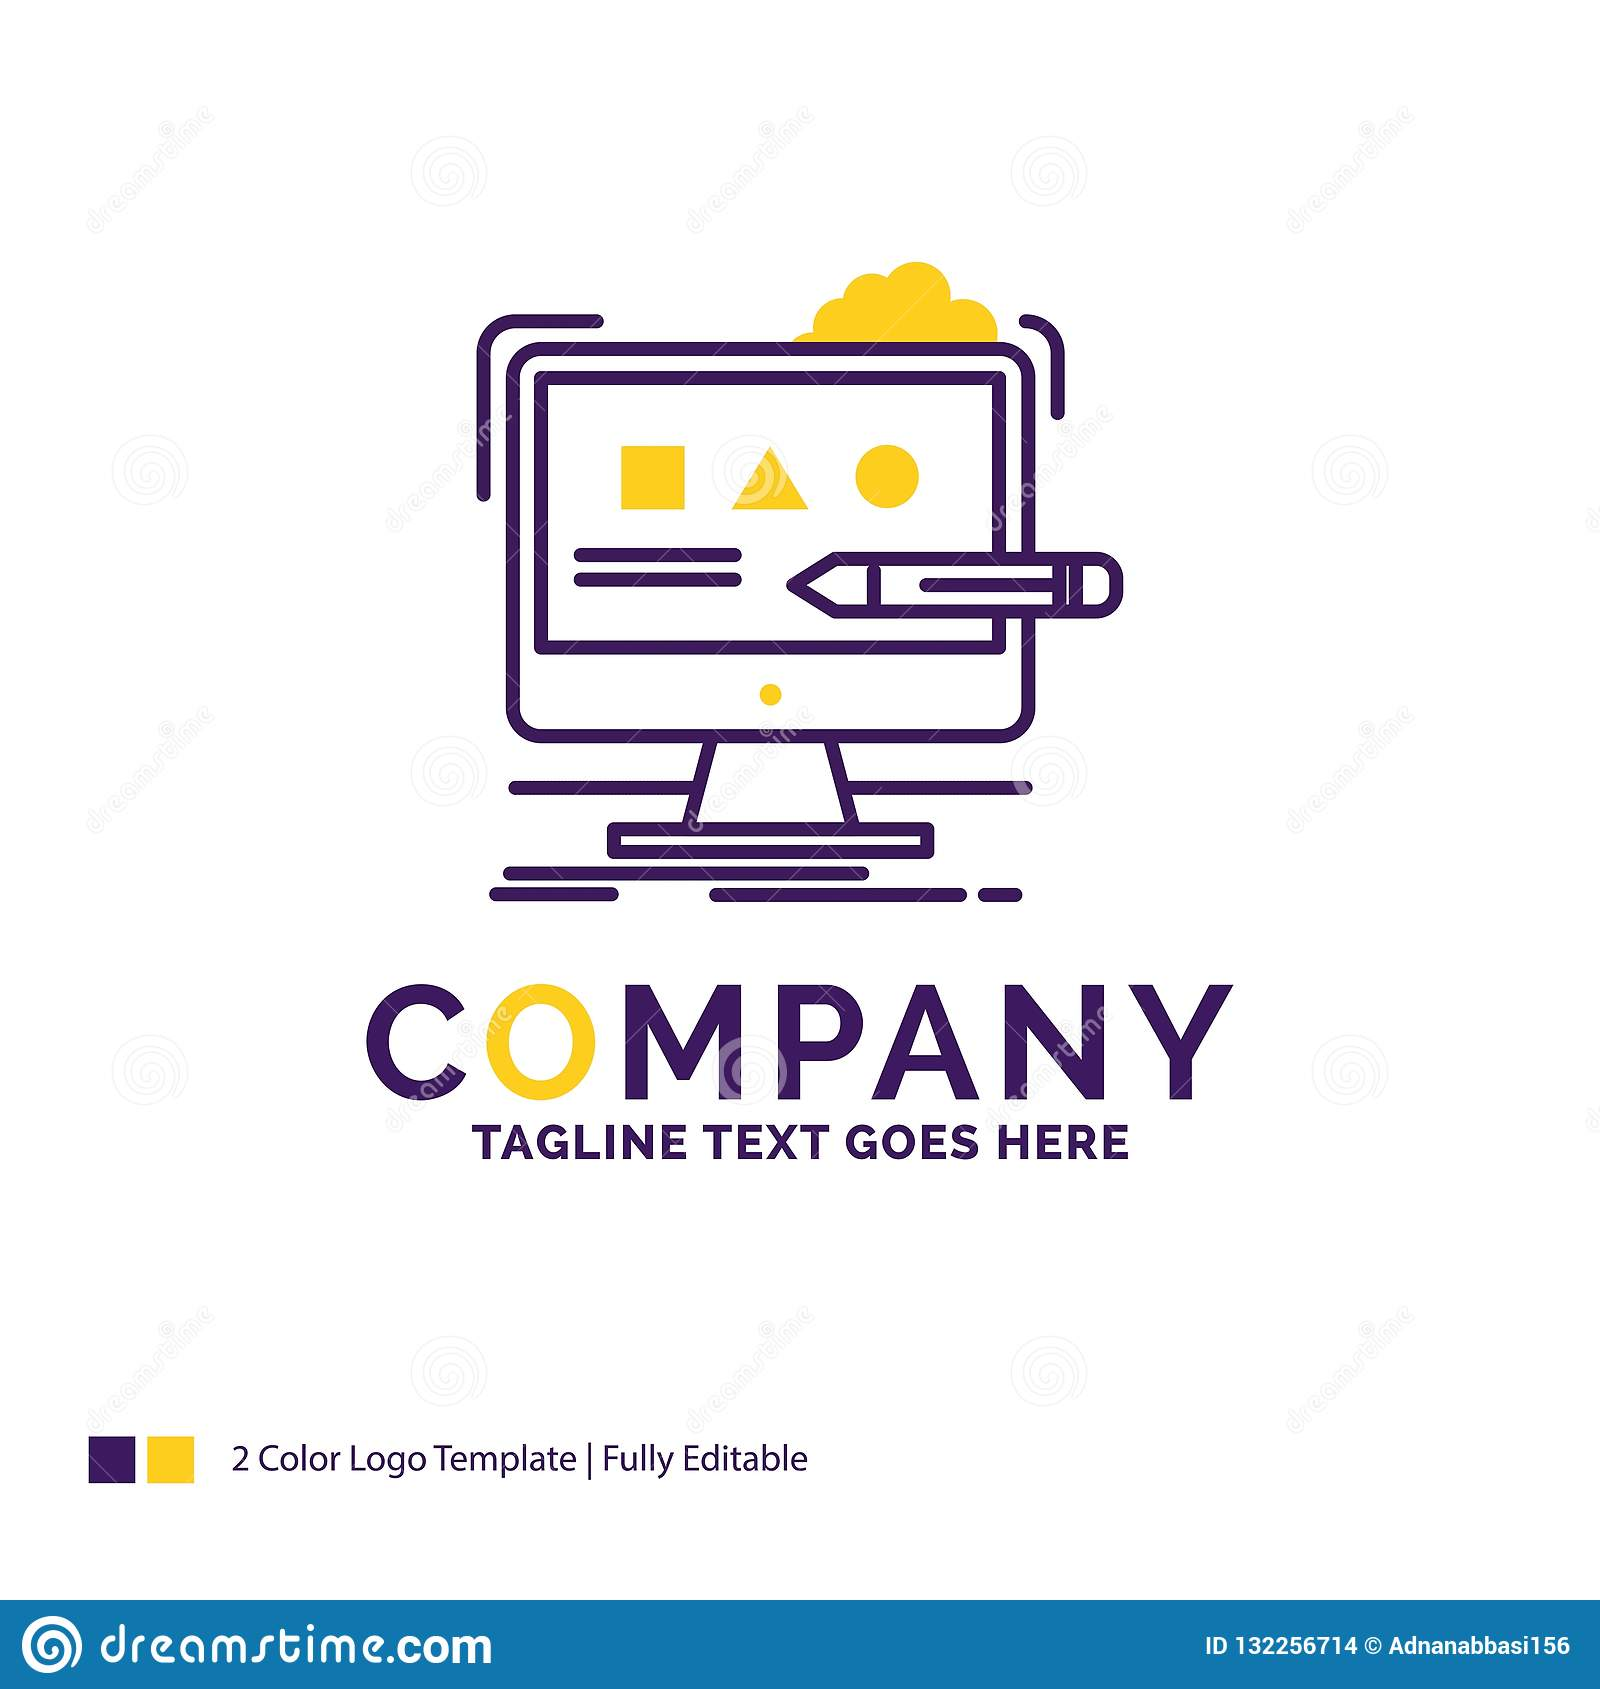 Company Name Logo Design For Art Computer Design Digital Stu